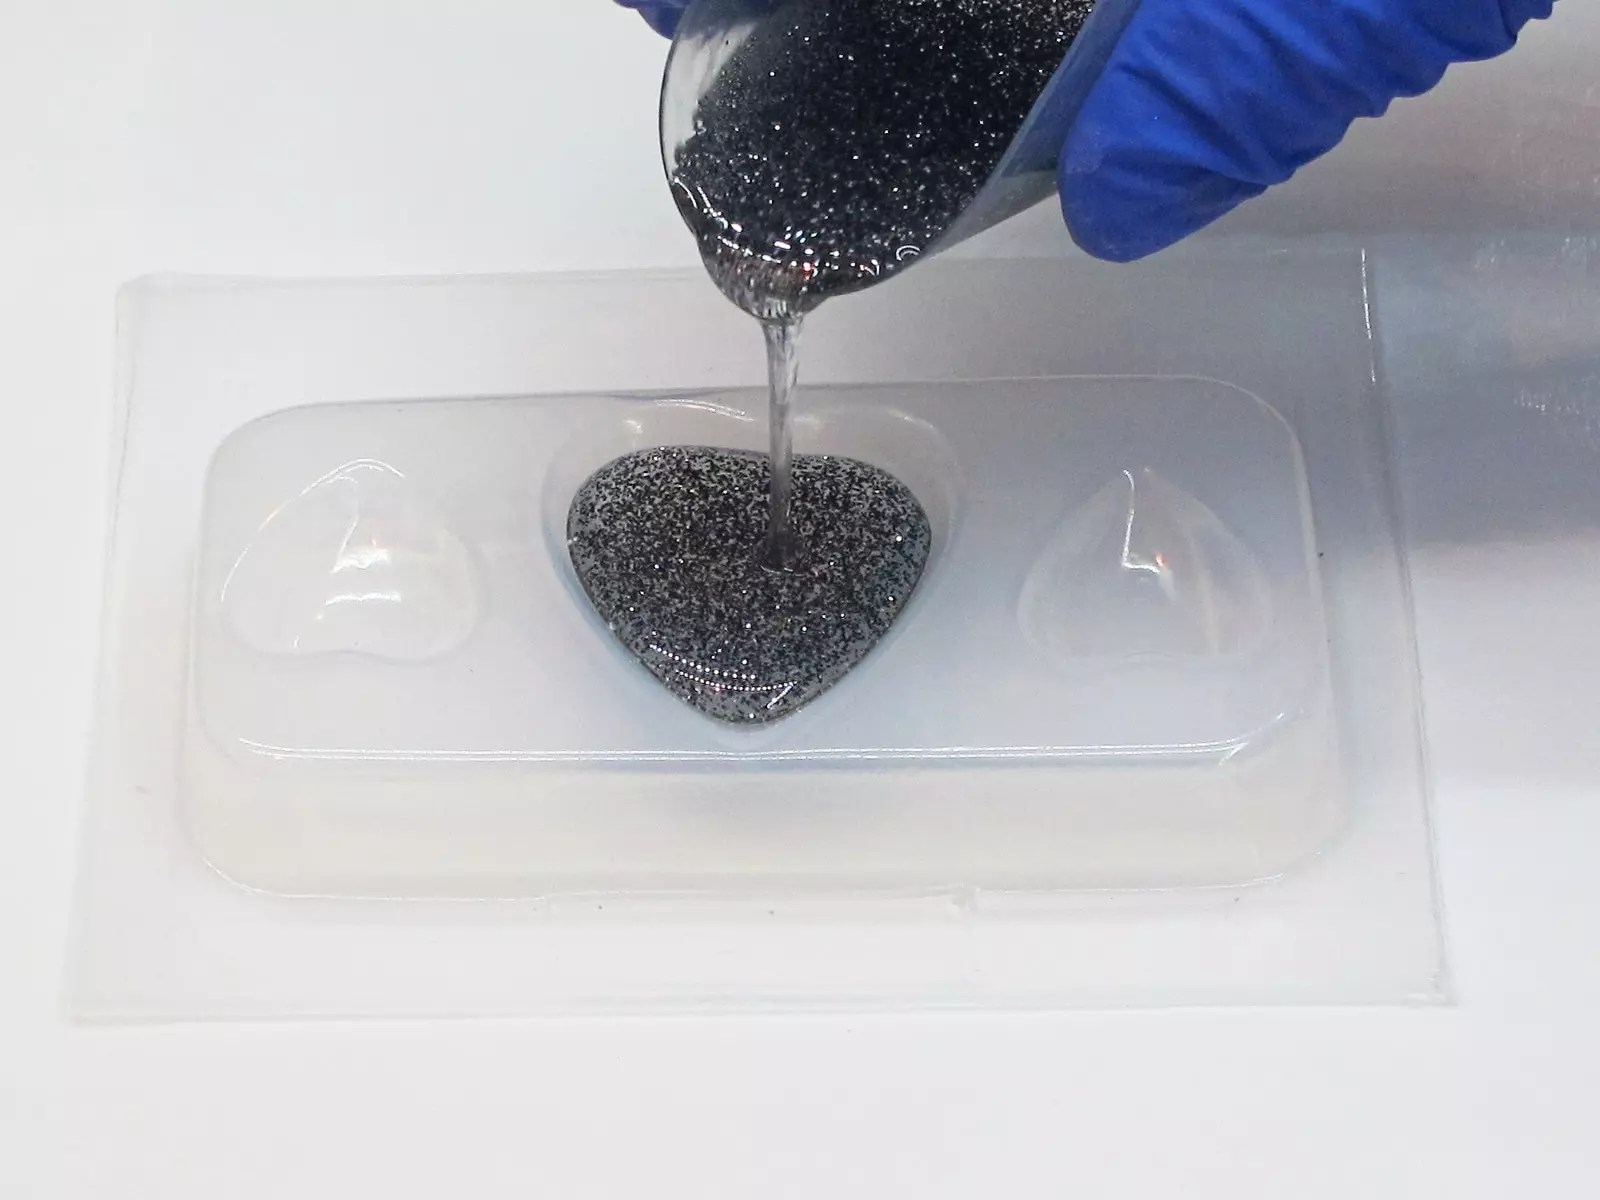 pouring resin into a plastic heart mold